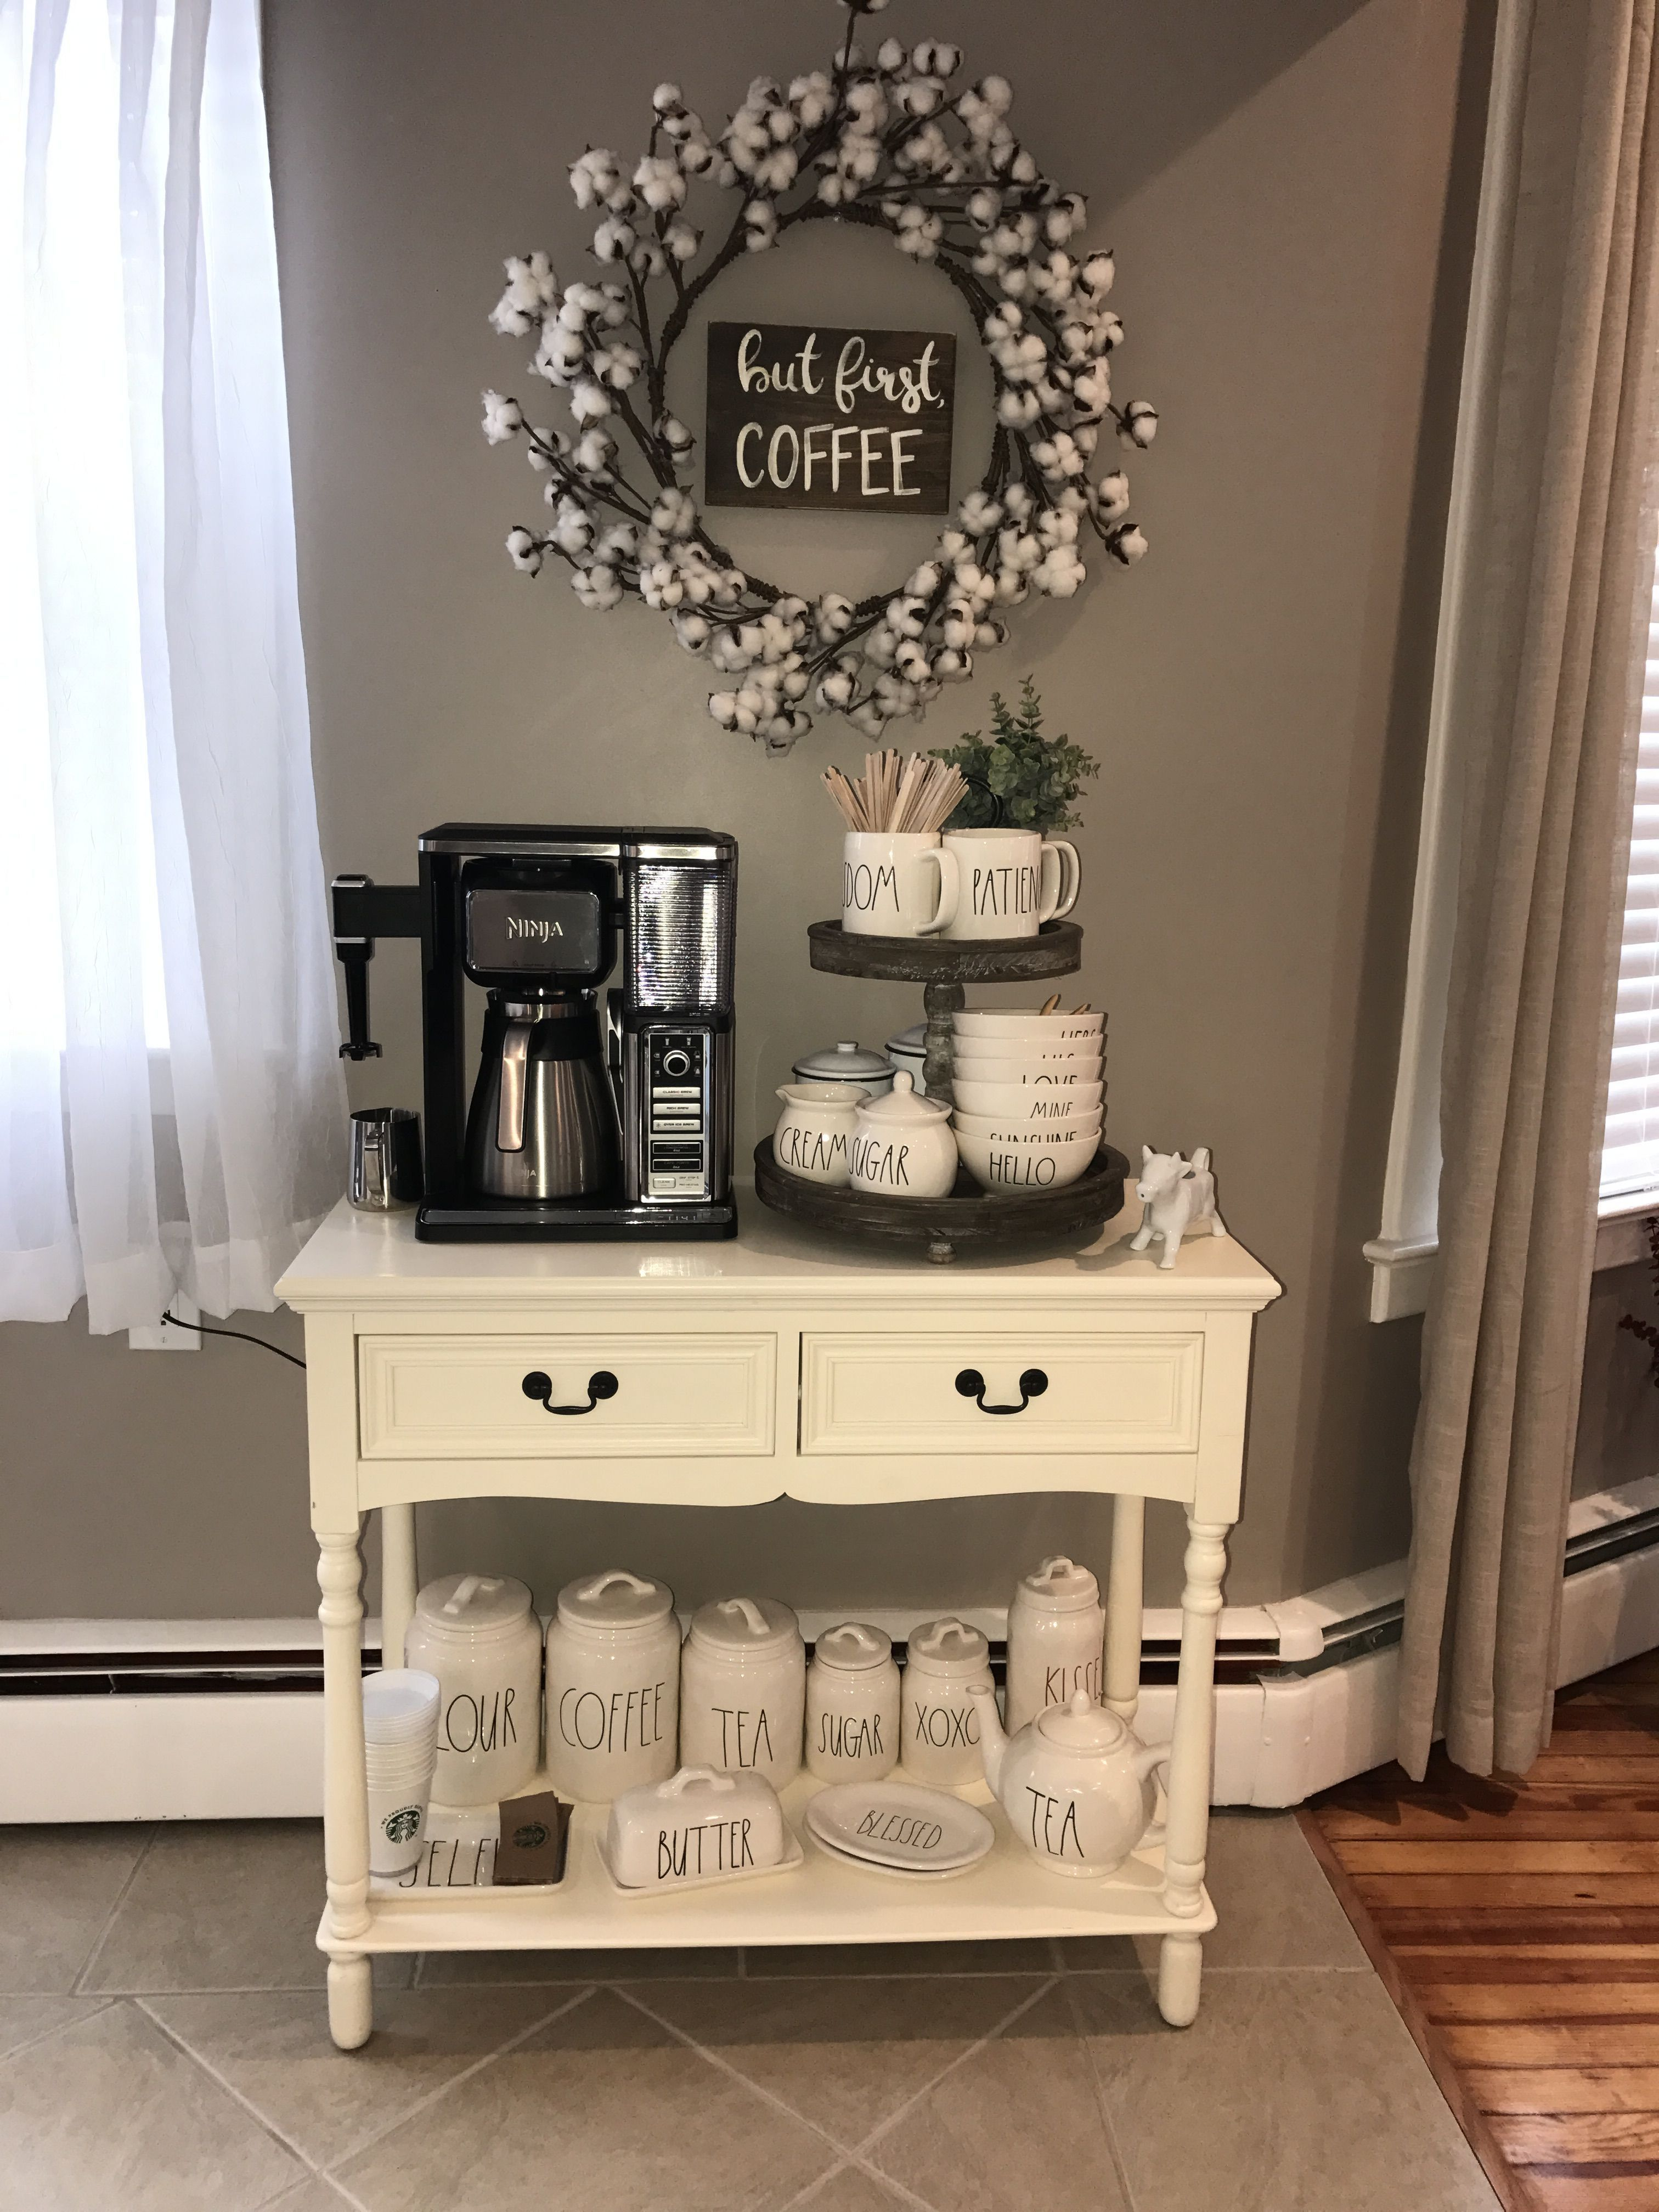 50 Save Space With A Farmhouse Home Bar - Homiku.com